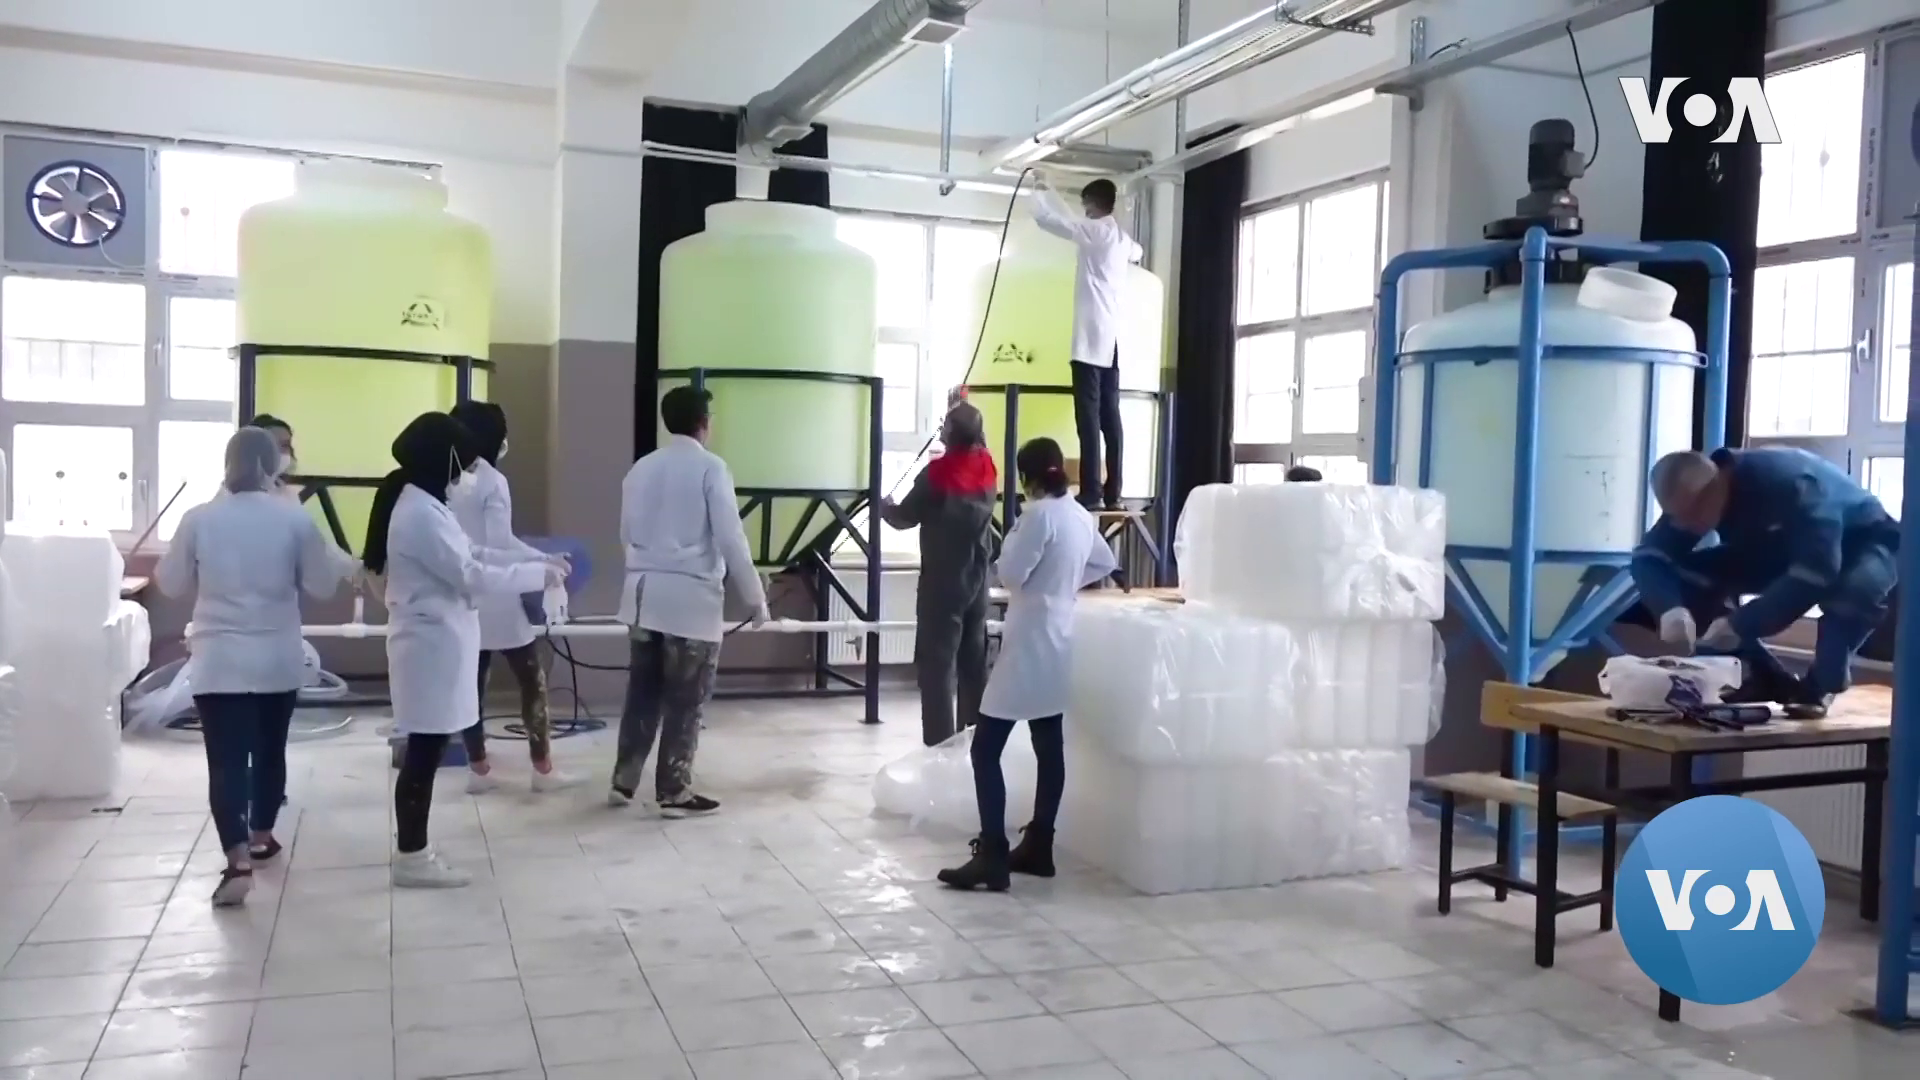 Turkish Vocational Students Step-up to Help Amid Disinfectants and Masks